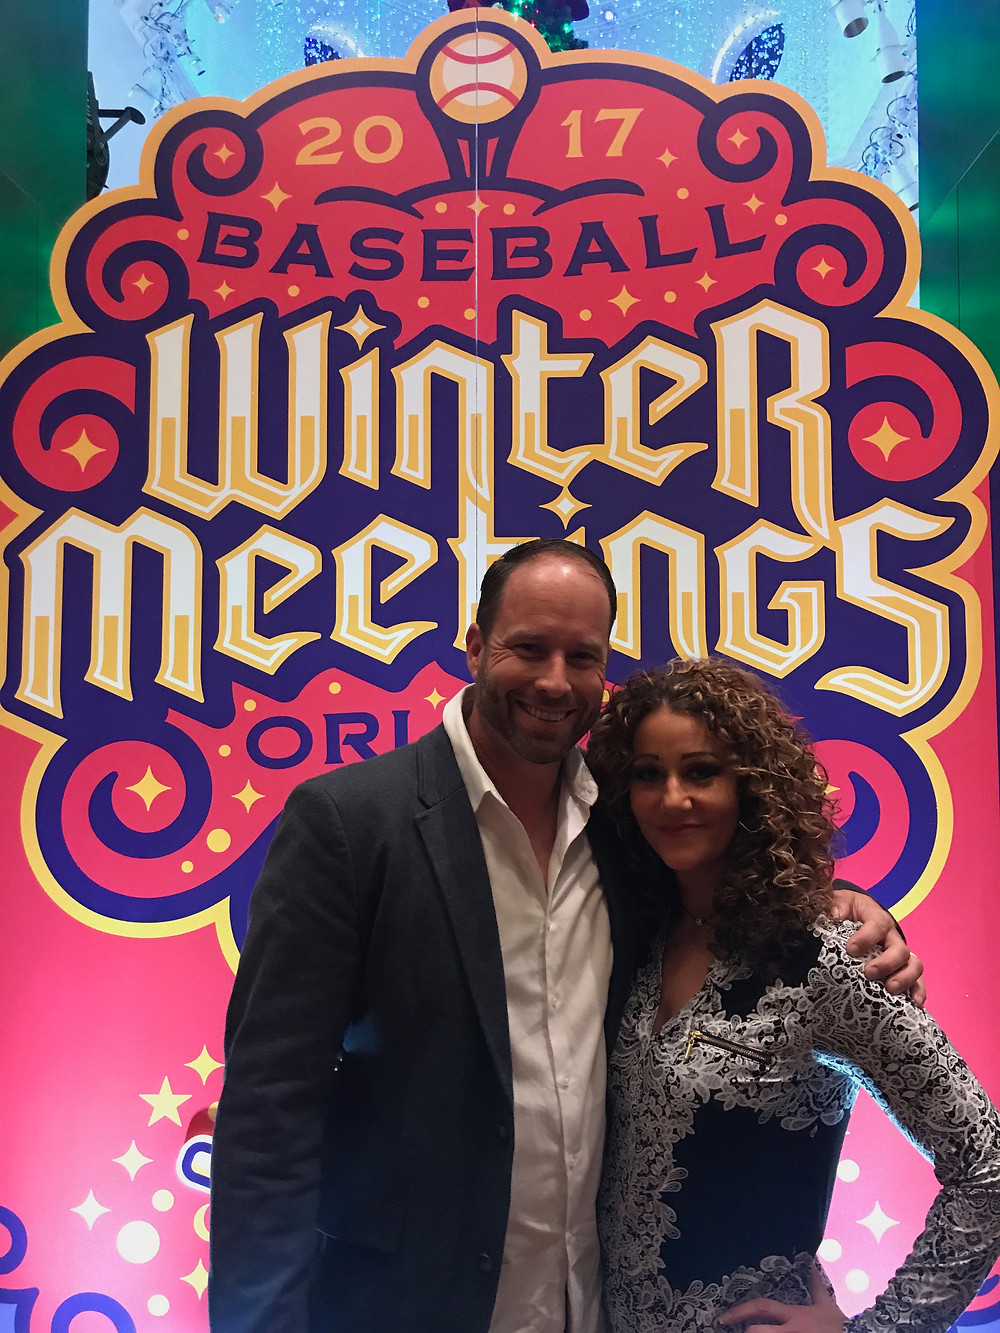 Shea and Shirley at the Winter Meetings 2017